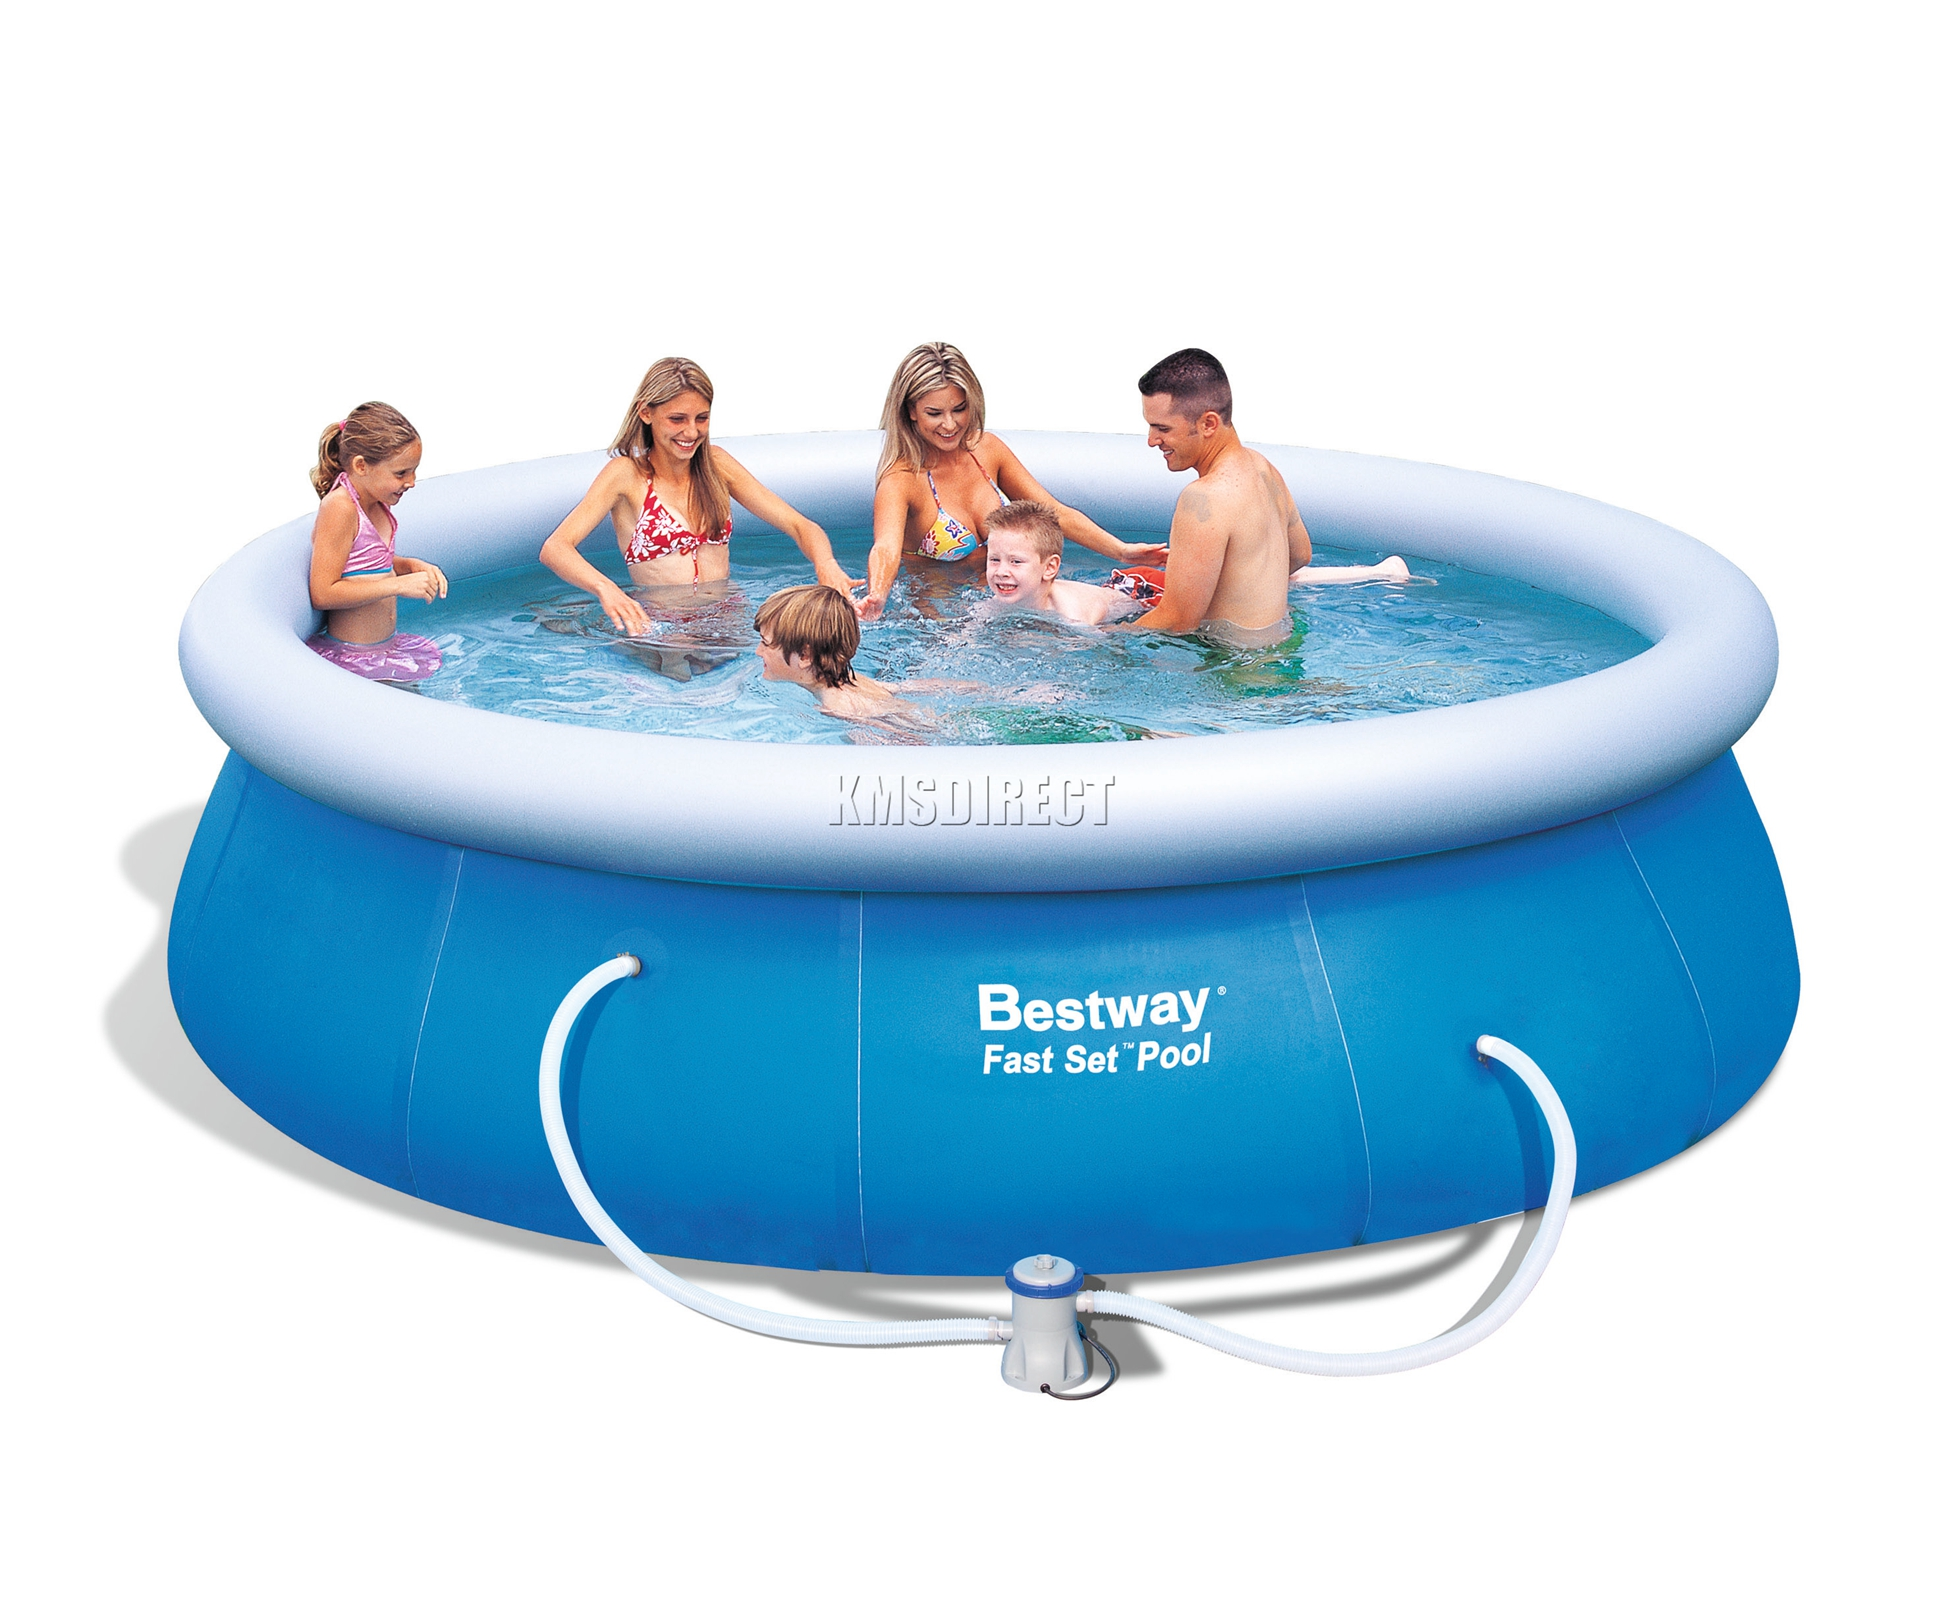 bestway swimming ground pool round inflatable 12ft x 36inch with filter pump ebay. Black Bedroom Furniture Sets. Home Design Ideas